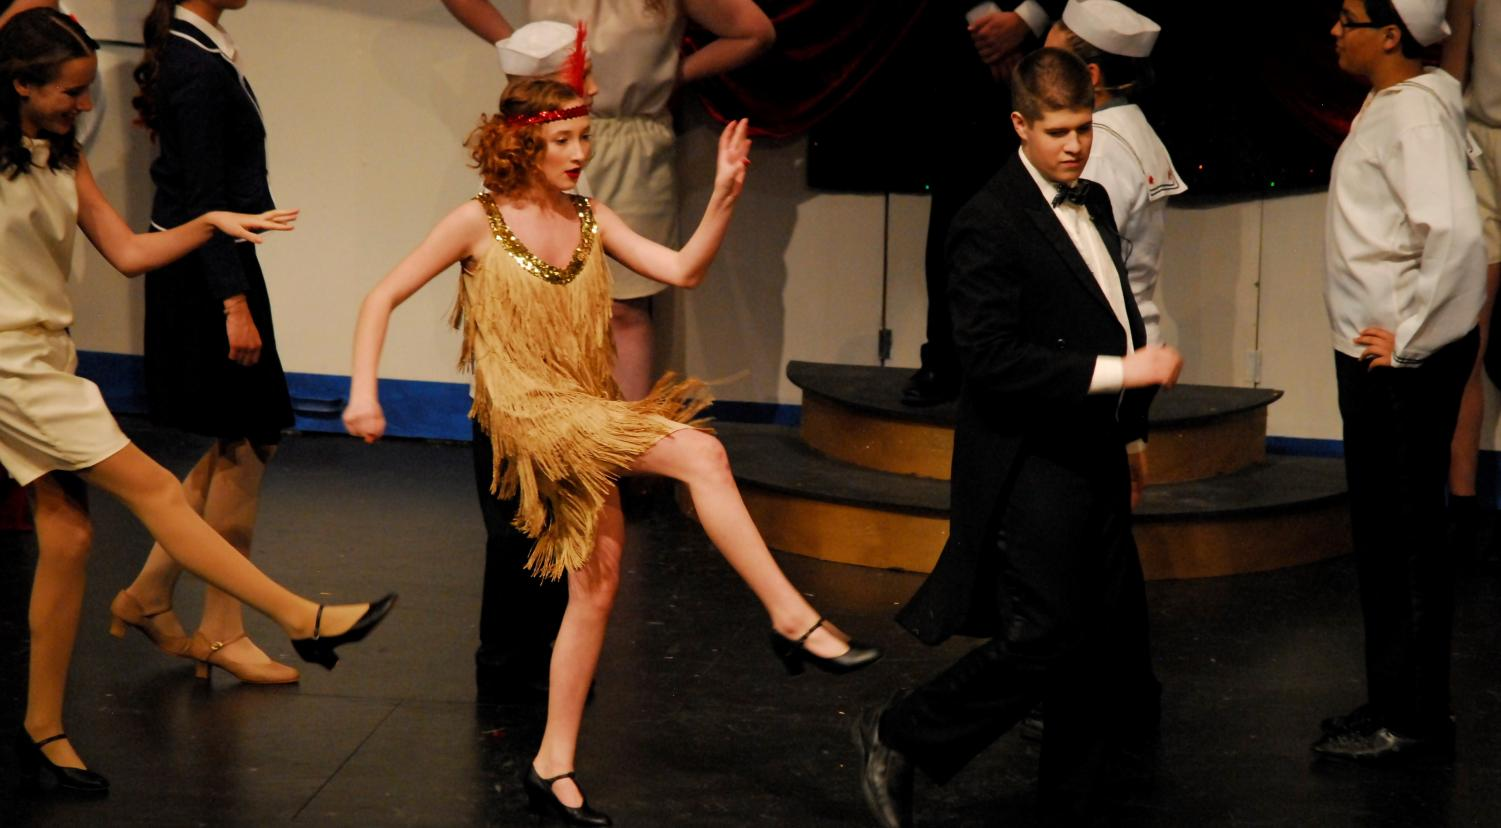 Vienna Qualey dances as Erma Latour in Anything Goes.